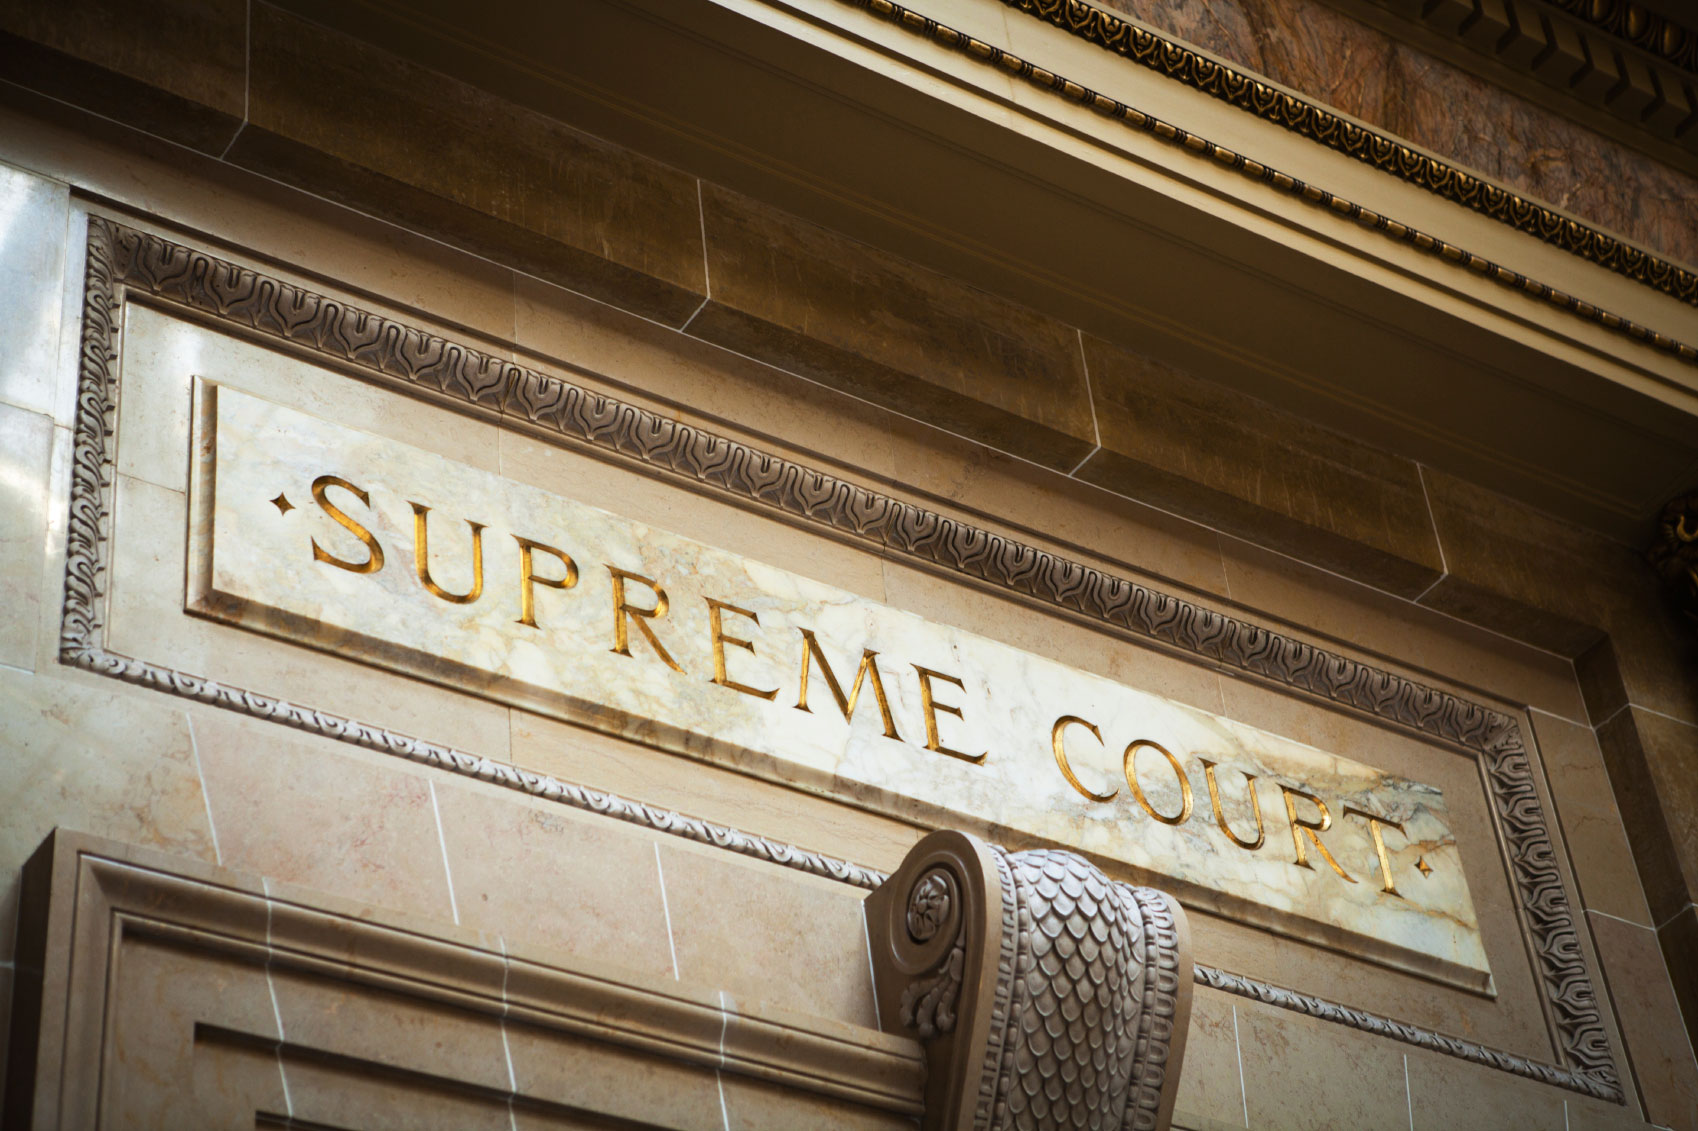 The Supreme Court heard arguments in King v. Burwell on the Affordable Care Act